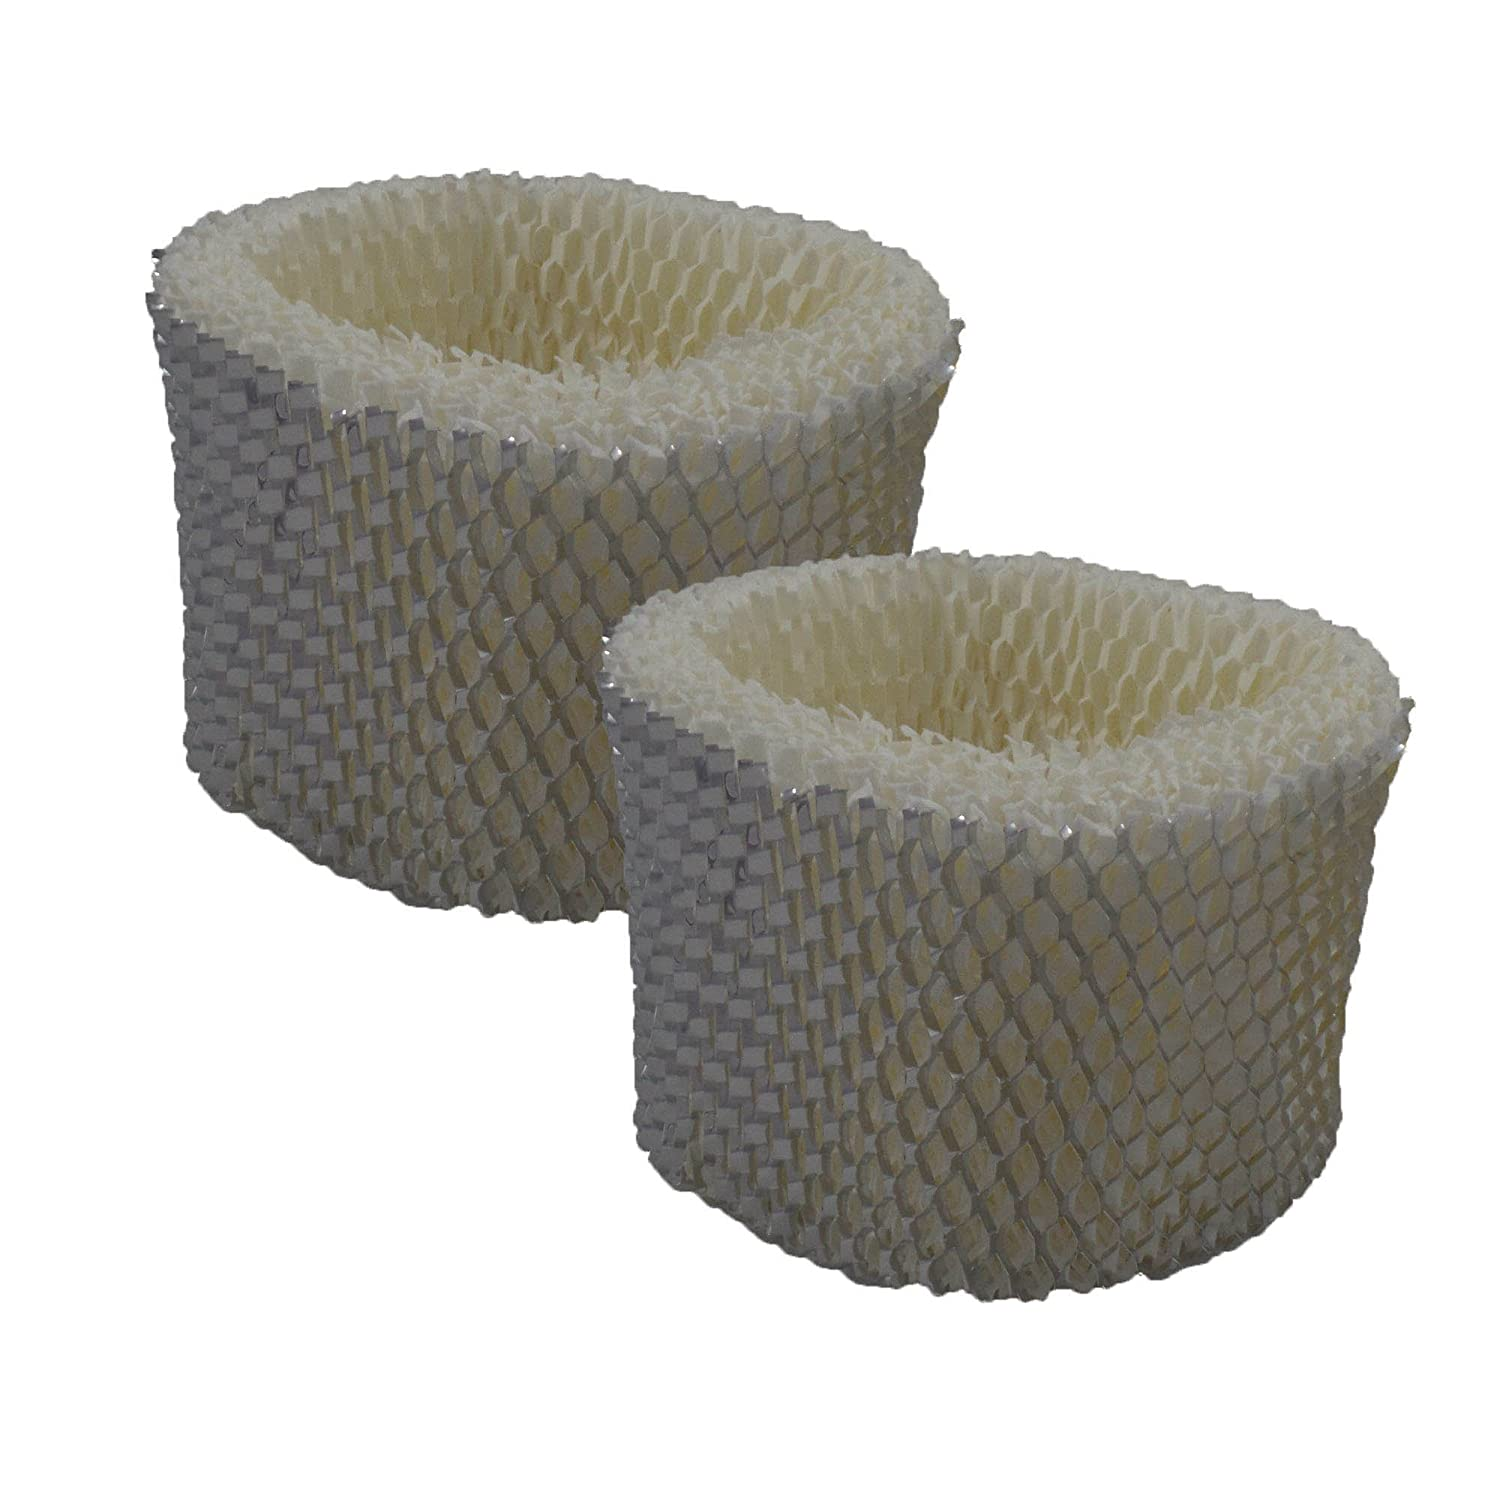 Air Filter Factory 2 Pack Compatible Humidifier Wick Filters For Sunbeam SCM1746, SCM1747, SF213